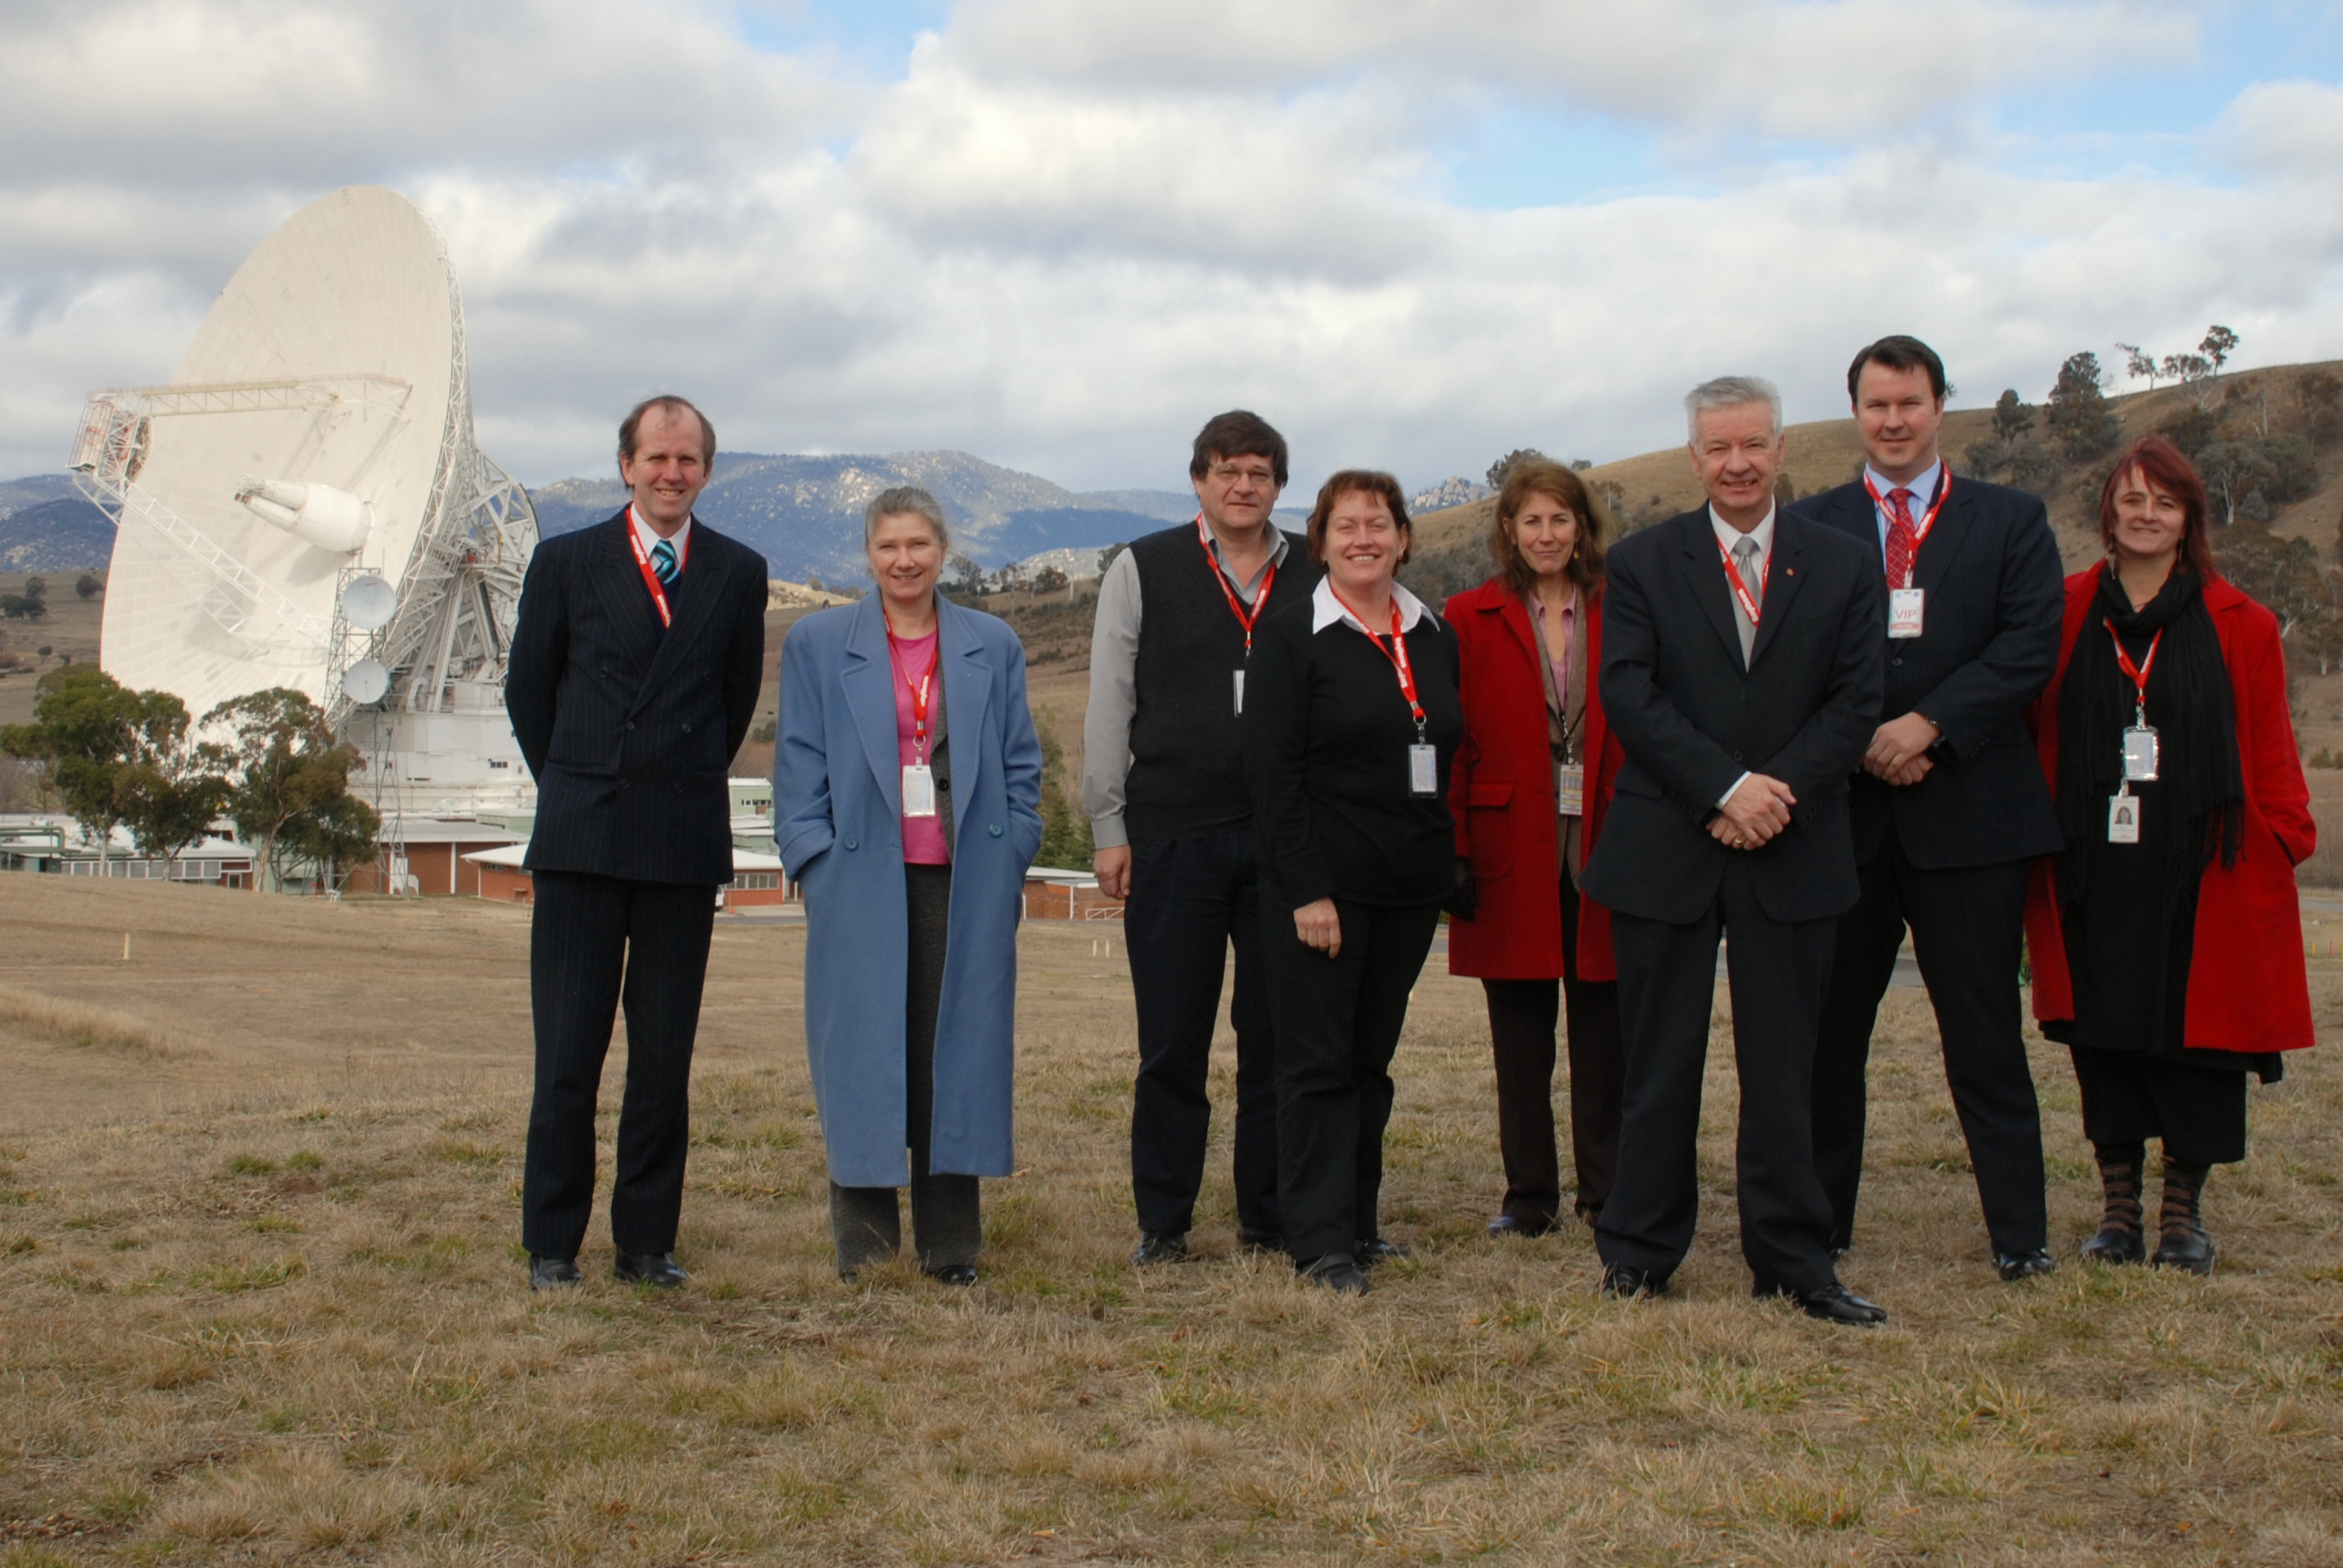 Standing Committee on Economics at the Canberra Deep Space Communication Complex, Tidbinbilla, ACT, 28 July 2008. L-R: John Hawkins [Committee Secretary], Stephanie Holden [Senior Research Officer], unknown, Senator Annette Hurley [Chair], unknown, Senators Doug Cameron and David Bushby, unknown.